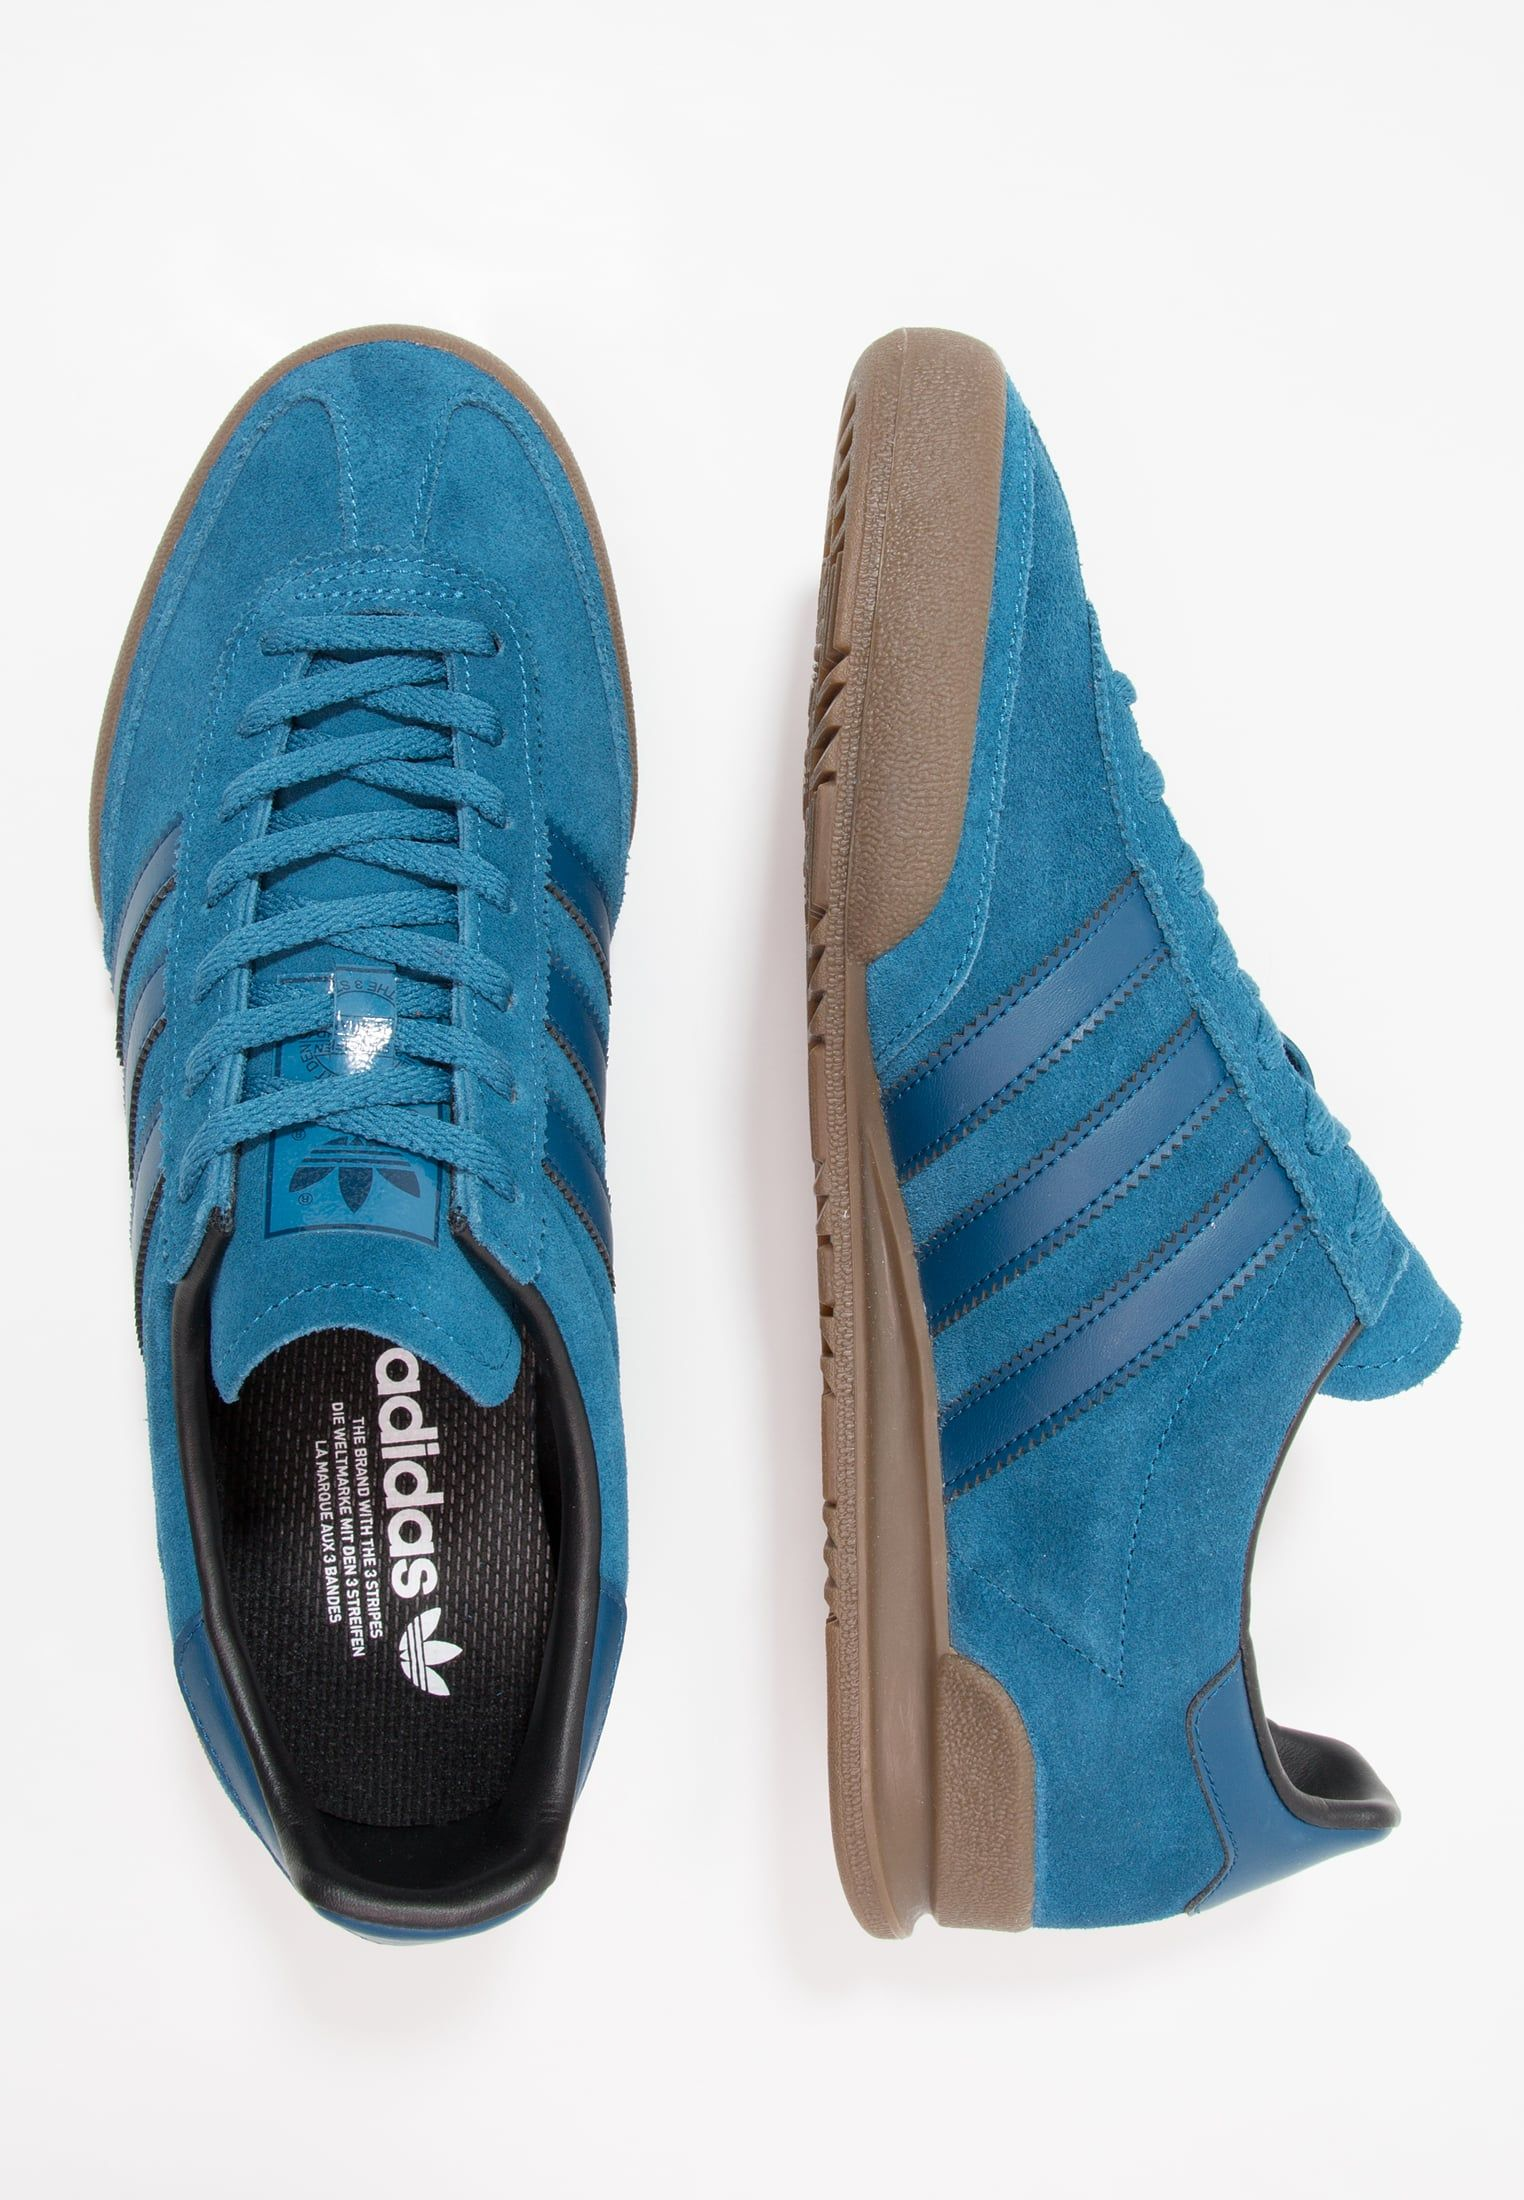 Adidas Jeans in aqua blue - i just had to snaffle a pair for £32.00 in the  Zalando sale - mental! a6d0f8c598